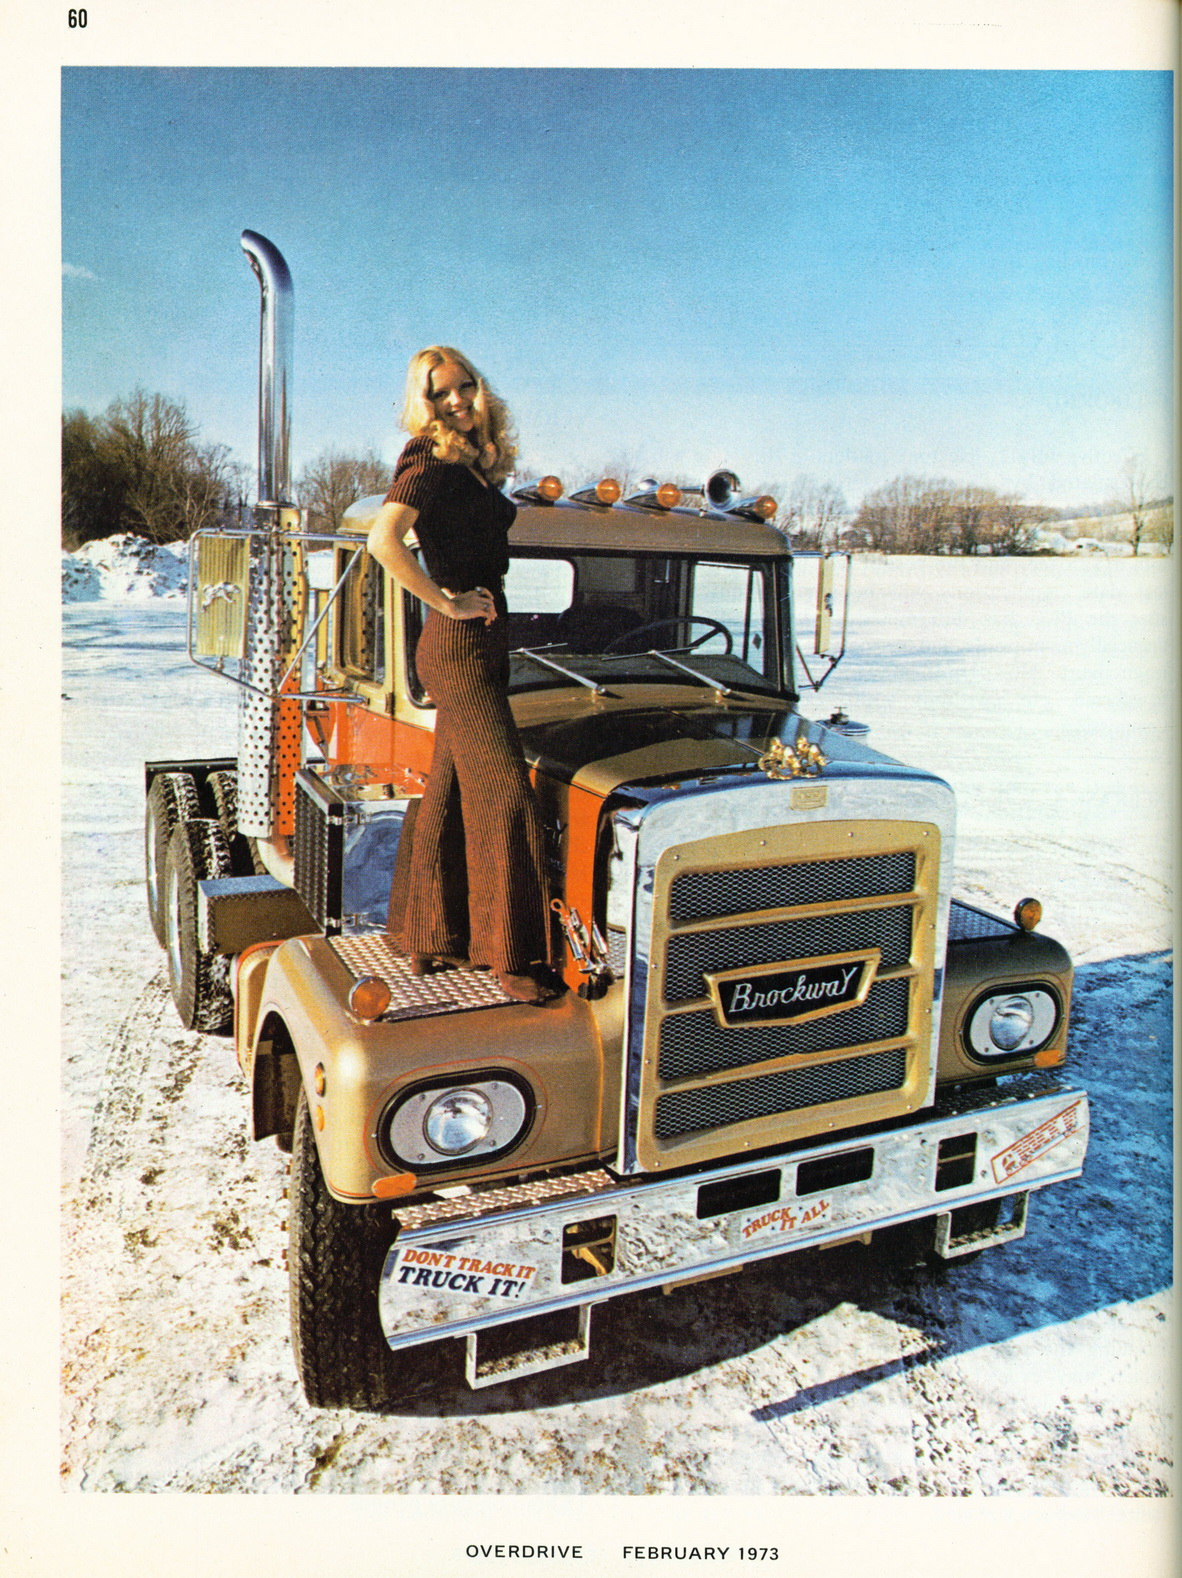 Overdrive Magazine 19721973 Voice of the American